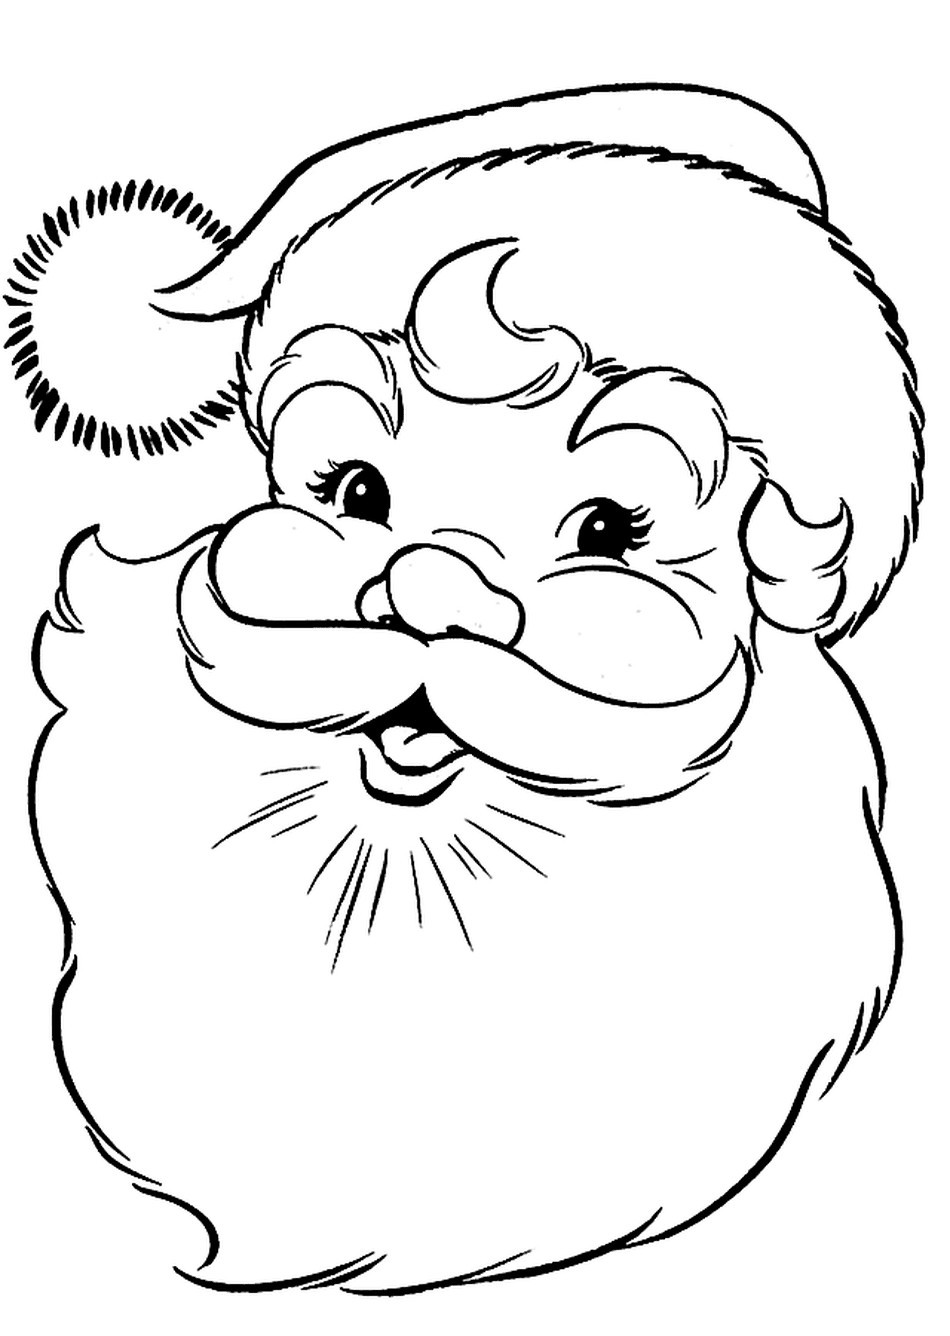 Santa Free Coloring Pages With Color Page Chronicles Network 950